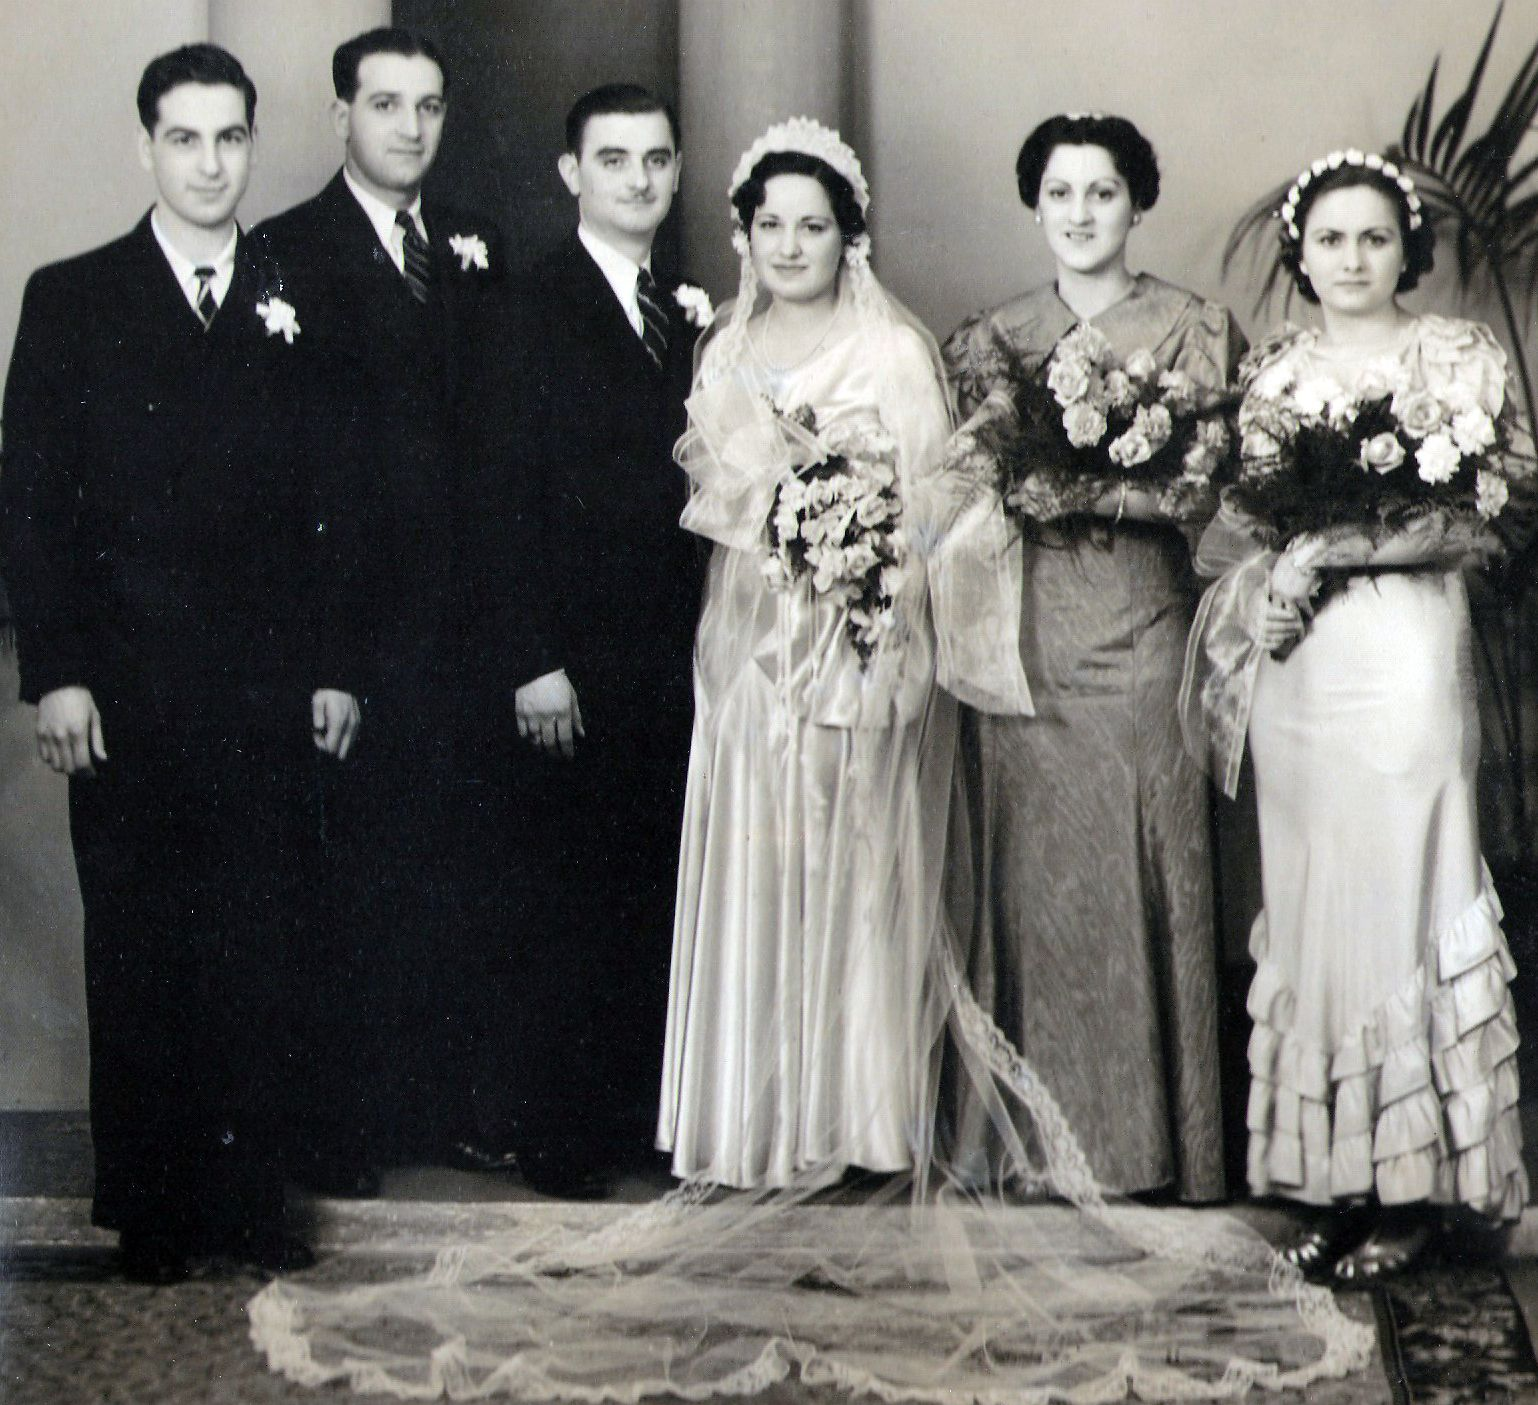 1930s Vintage wedding photograph. From my collection of ...